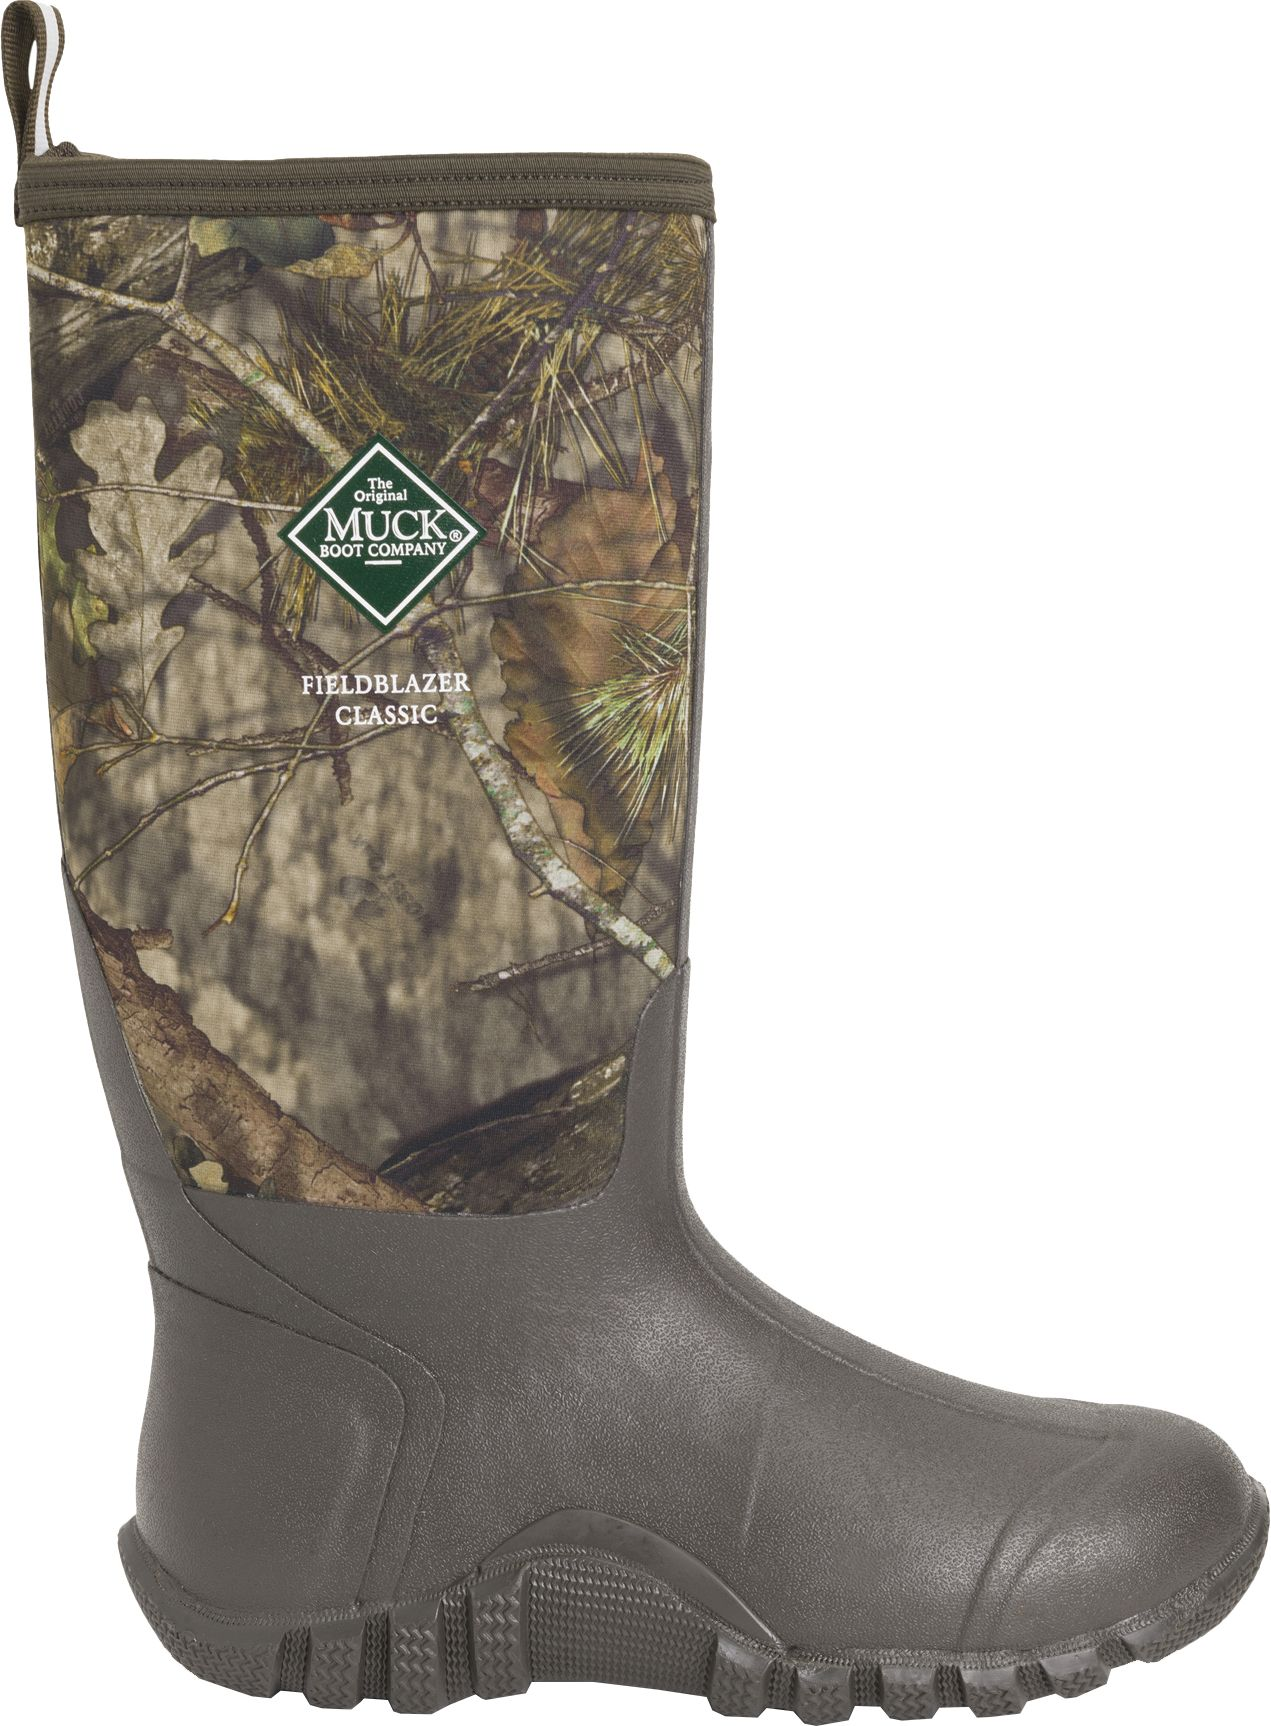 Muck Boots Men's Fieldblazer Classic Mossy Oak Rubber Hunting Boots, Size: 6.0, Mossy Oak Country